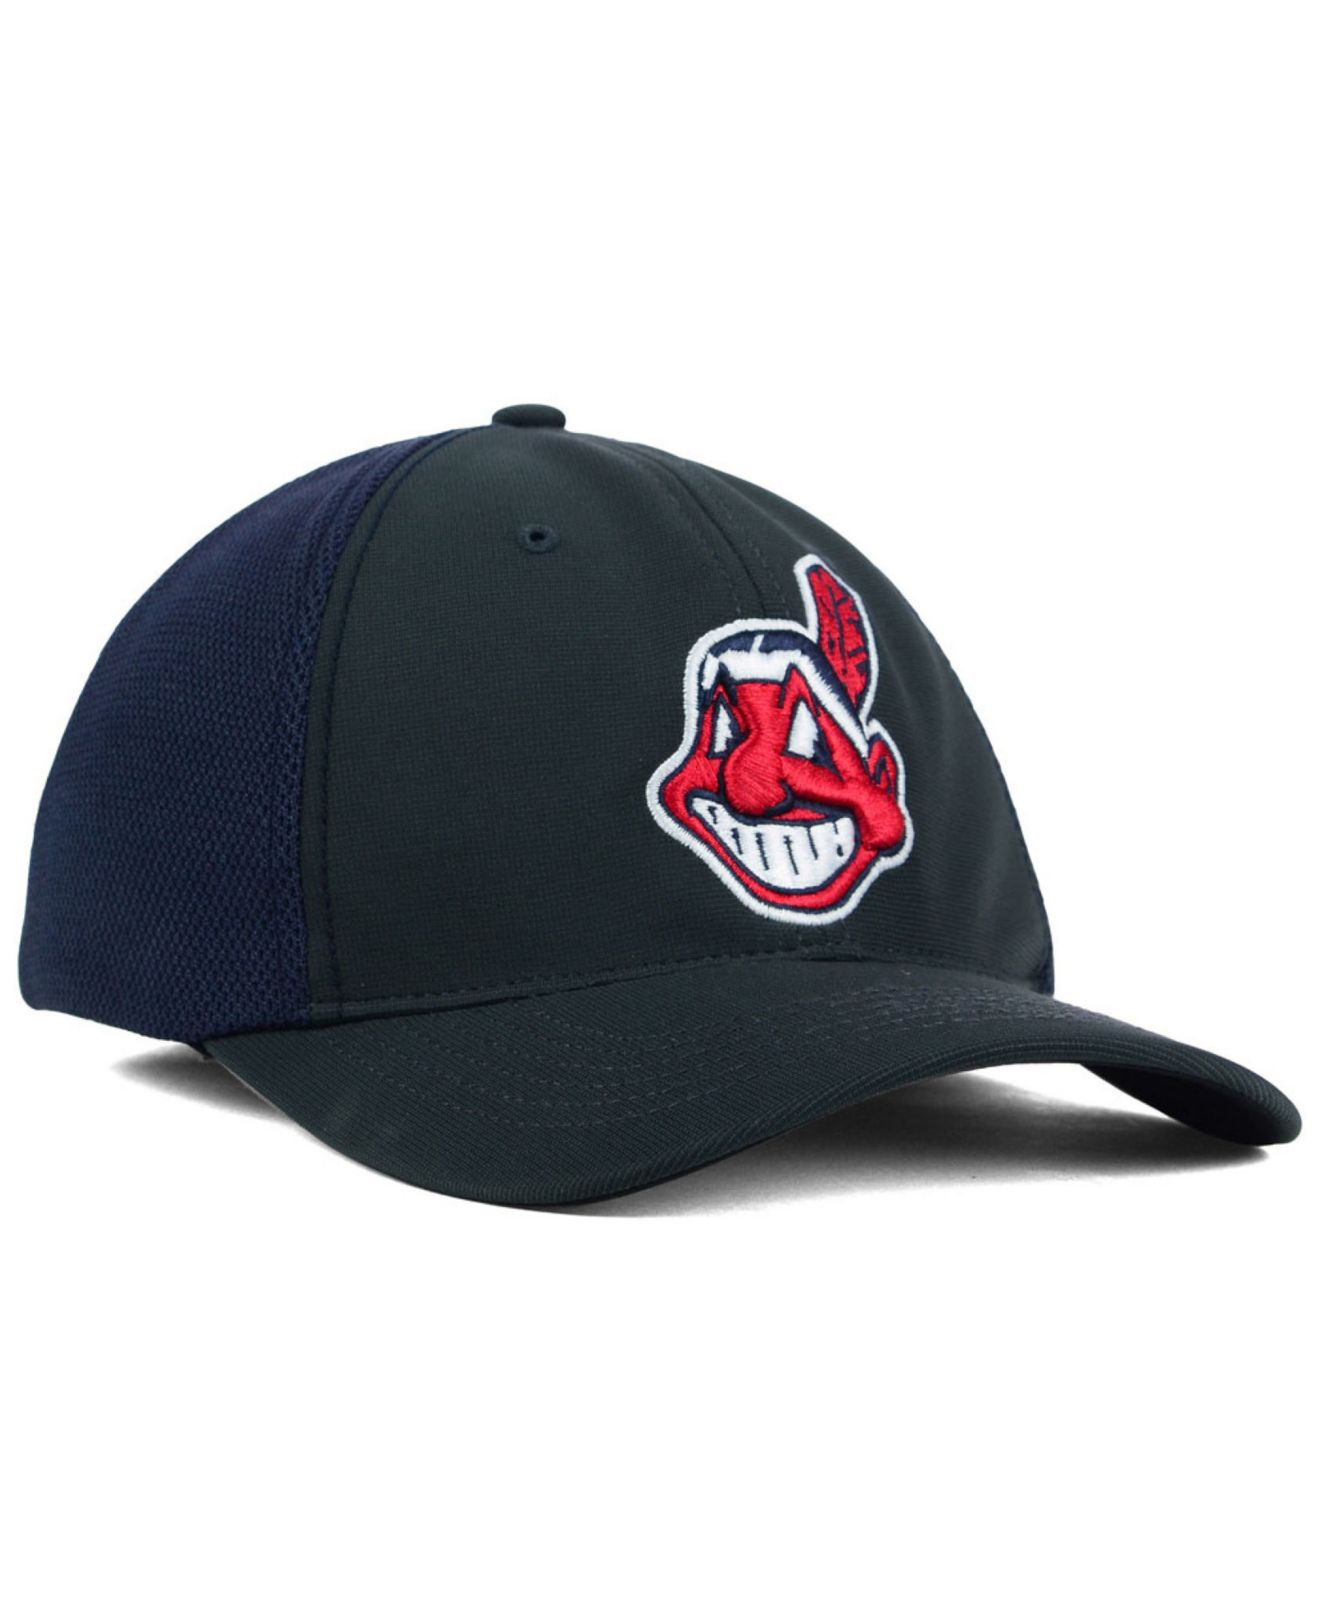 ... closeout lyst 47 brand cleveland indians stretch fit cap in gray for  men 14c81 6c2aa 0f641991c485